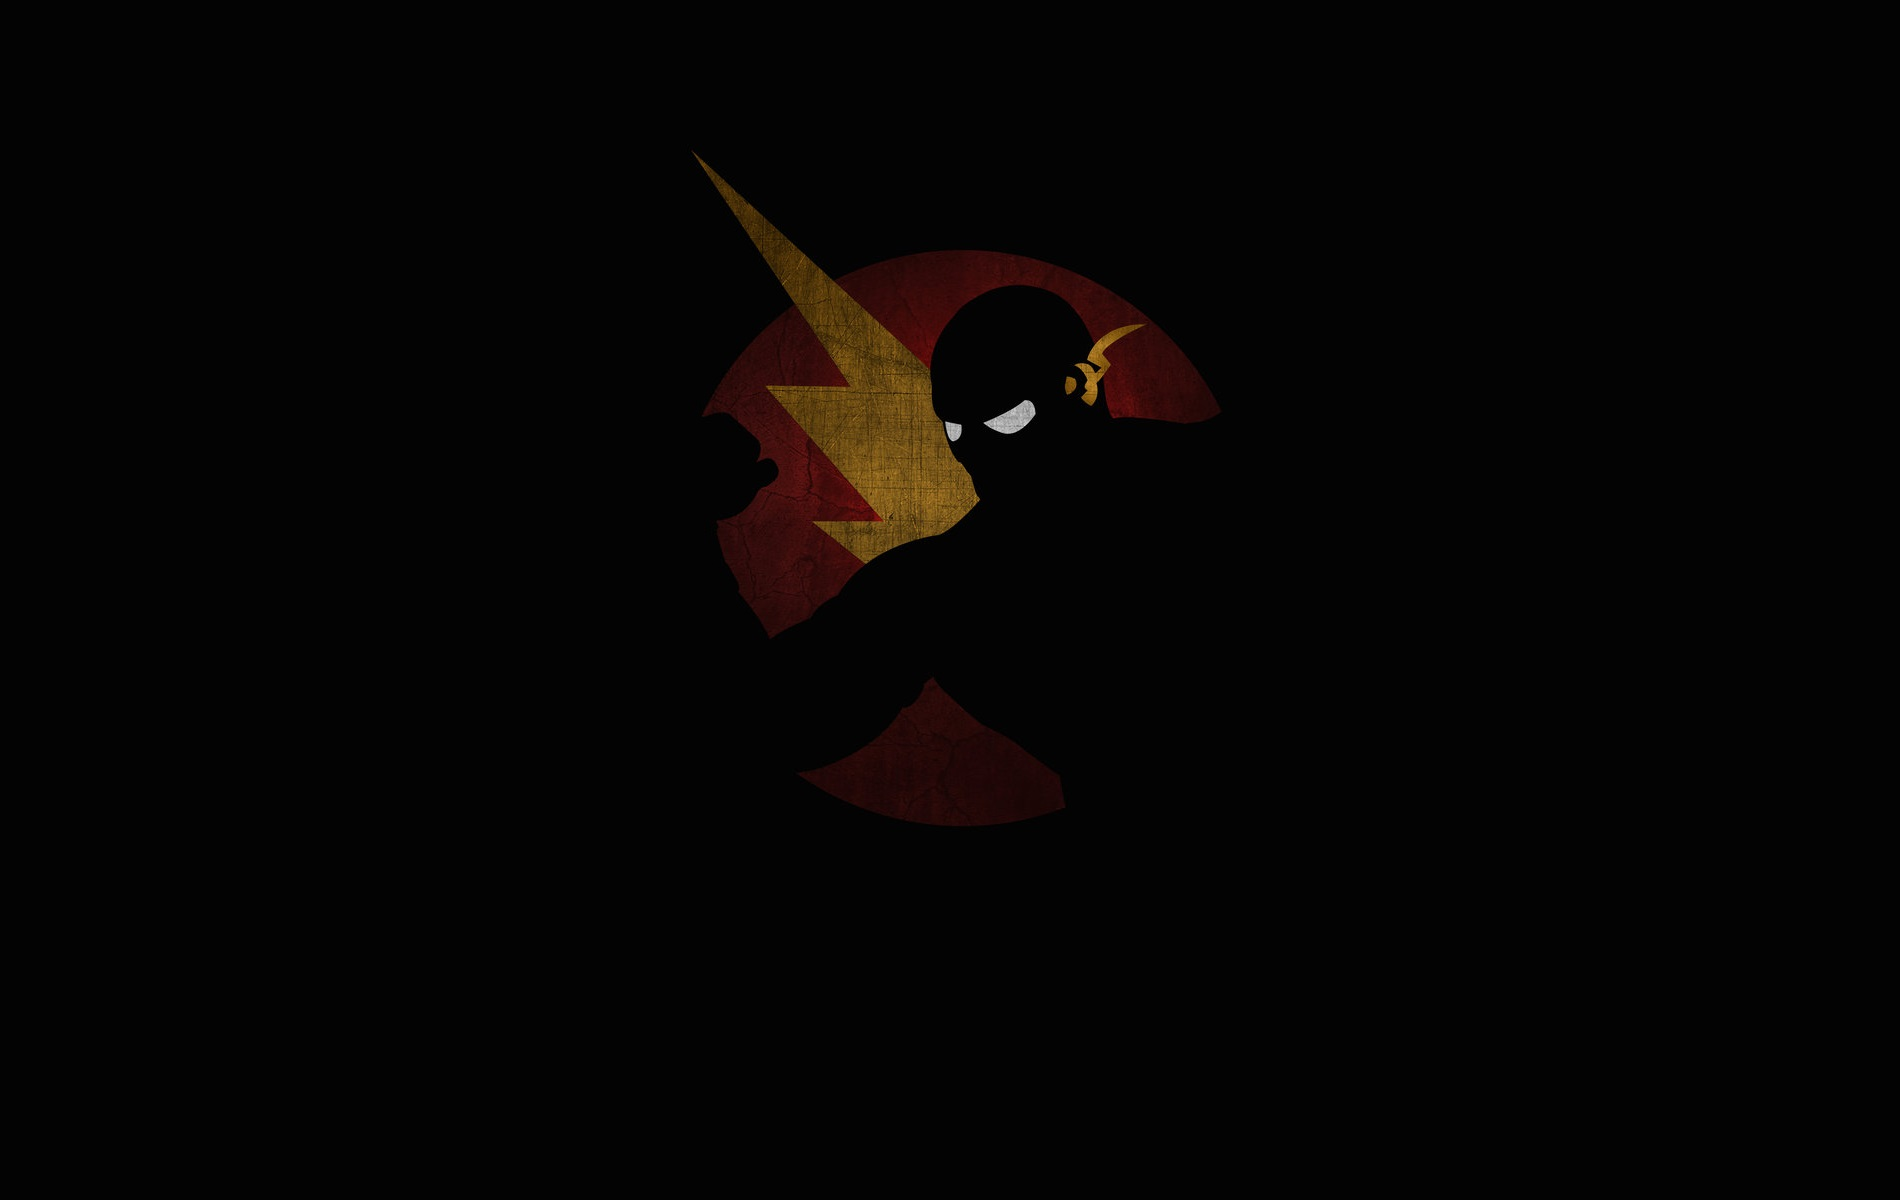 the flash iphone wallpaper hd images